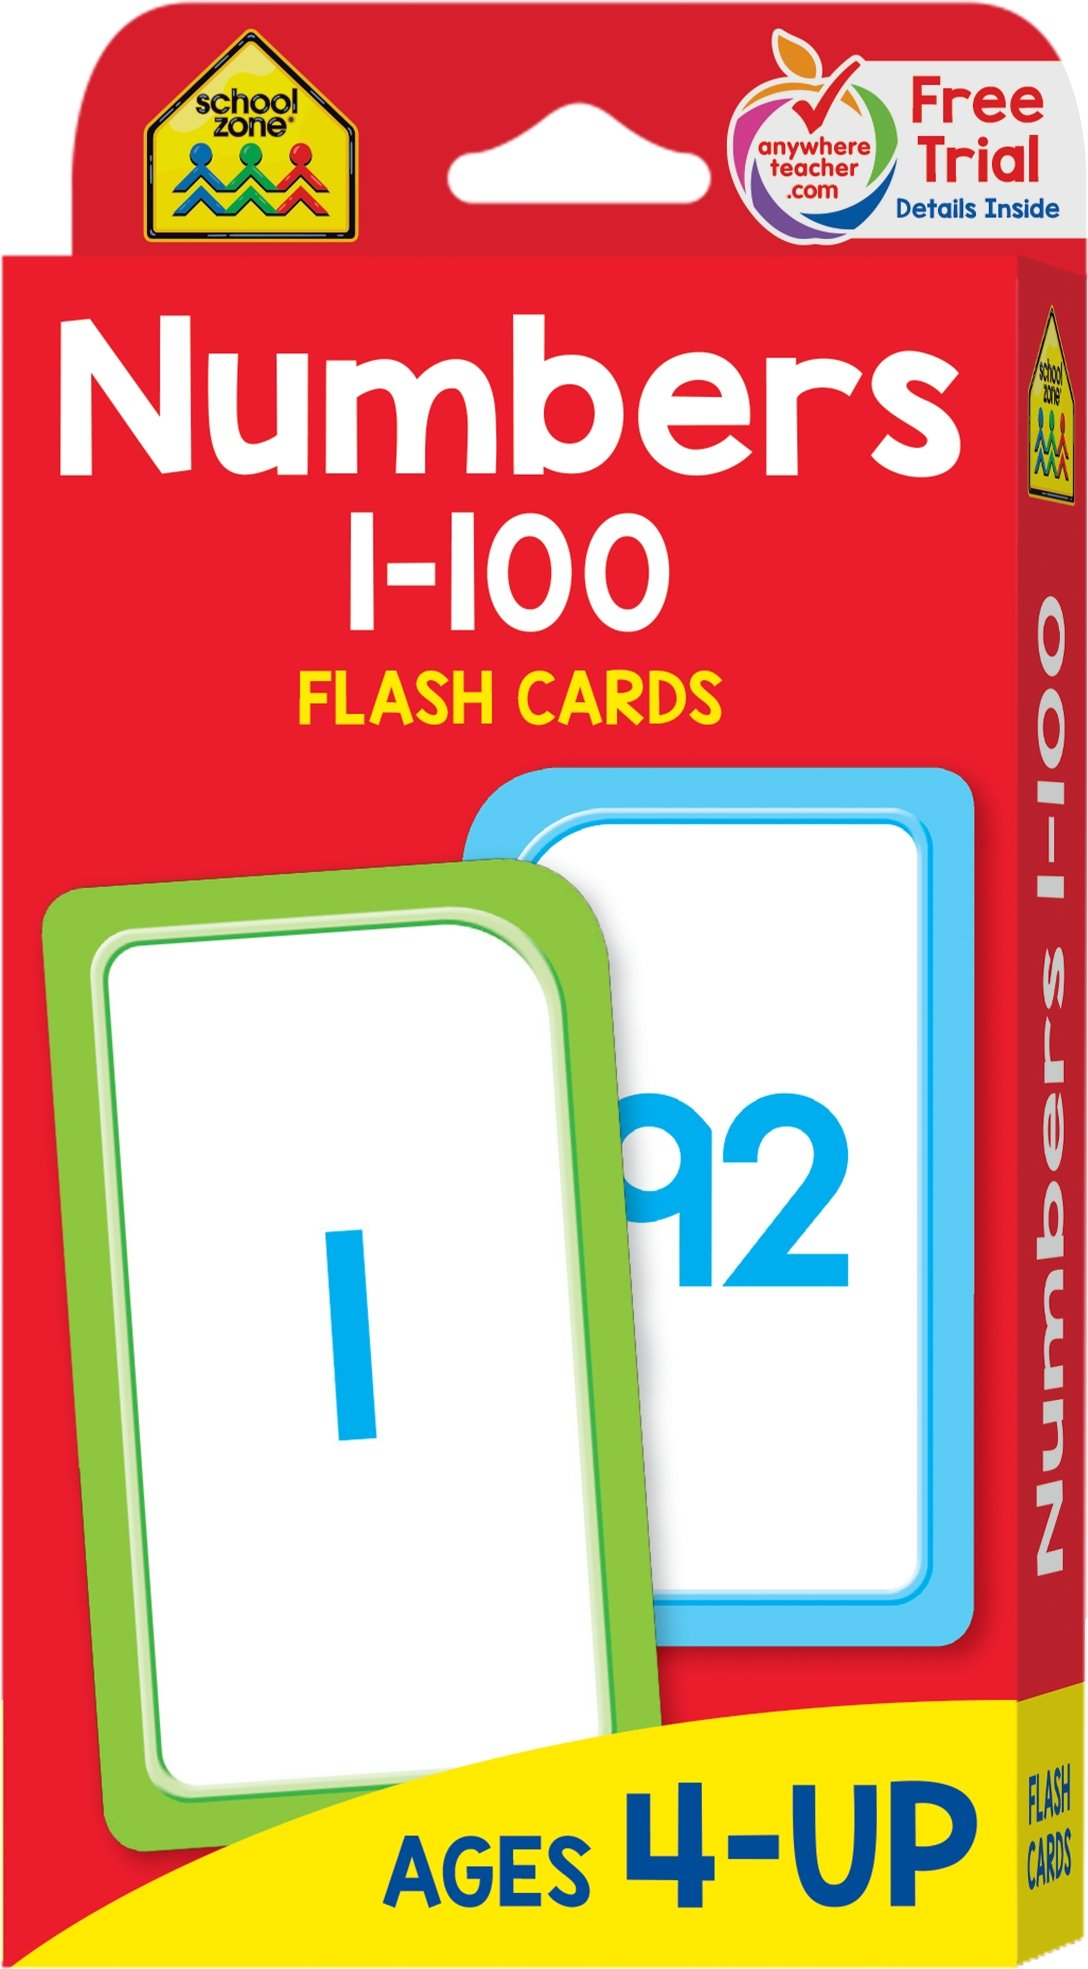 photograph relating to Printable Numbers 1 20 Flashcards referred to as College Zone - Quantities 1-100 Flash Playing cards - Ages 4 and Up